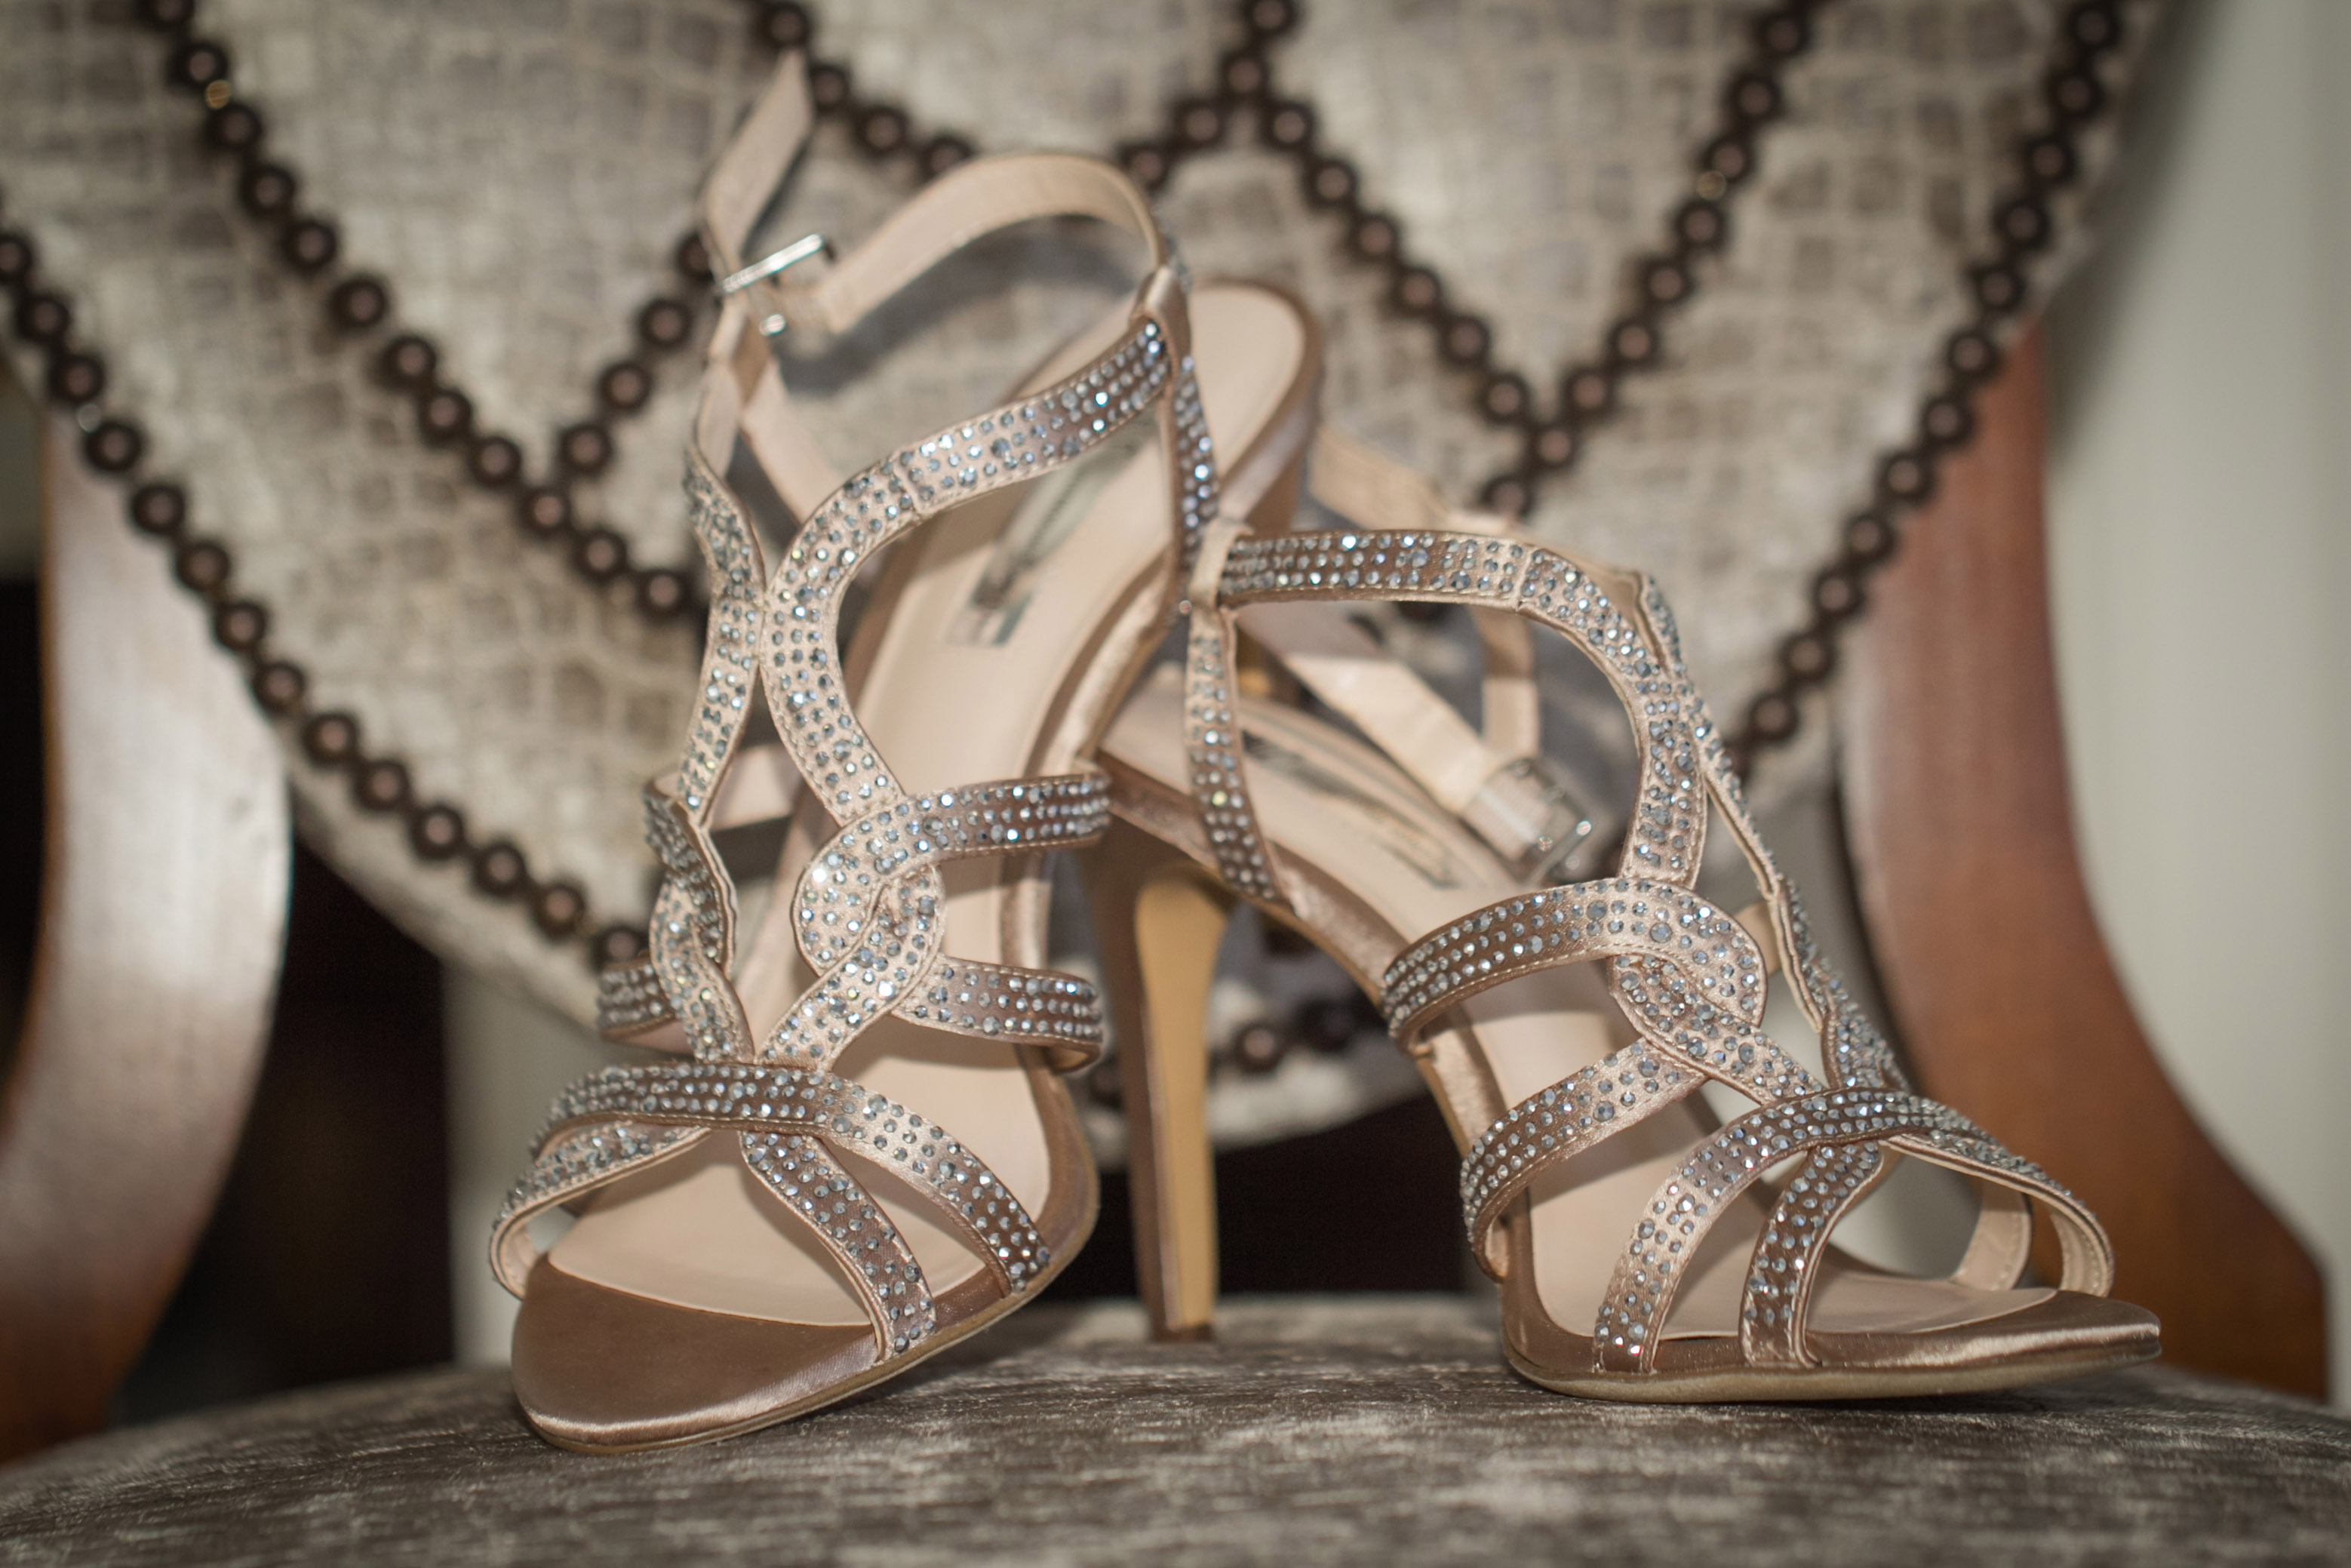 Wedding photography, shoe photo.